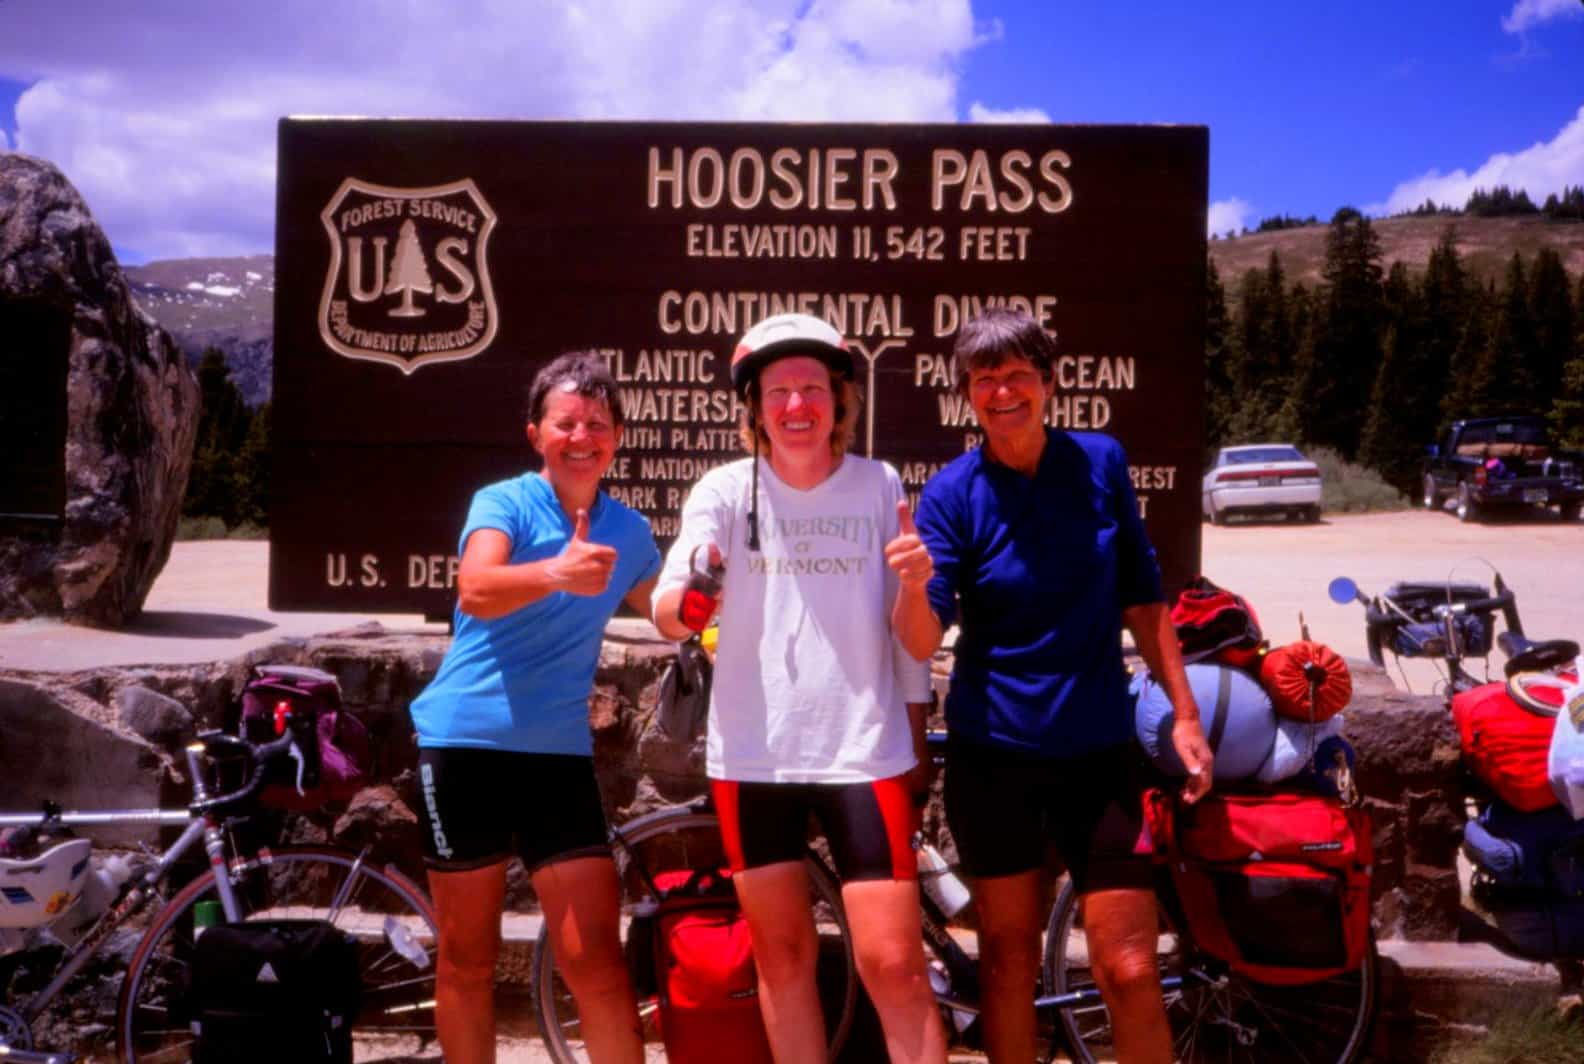 3 female cyclists at Hoosier Pass